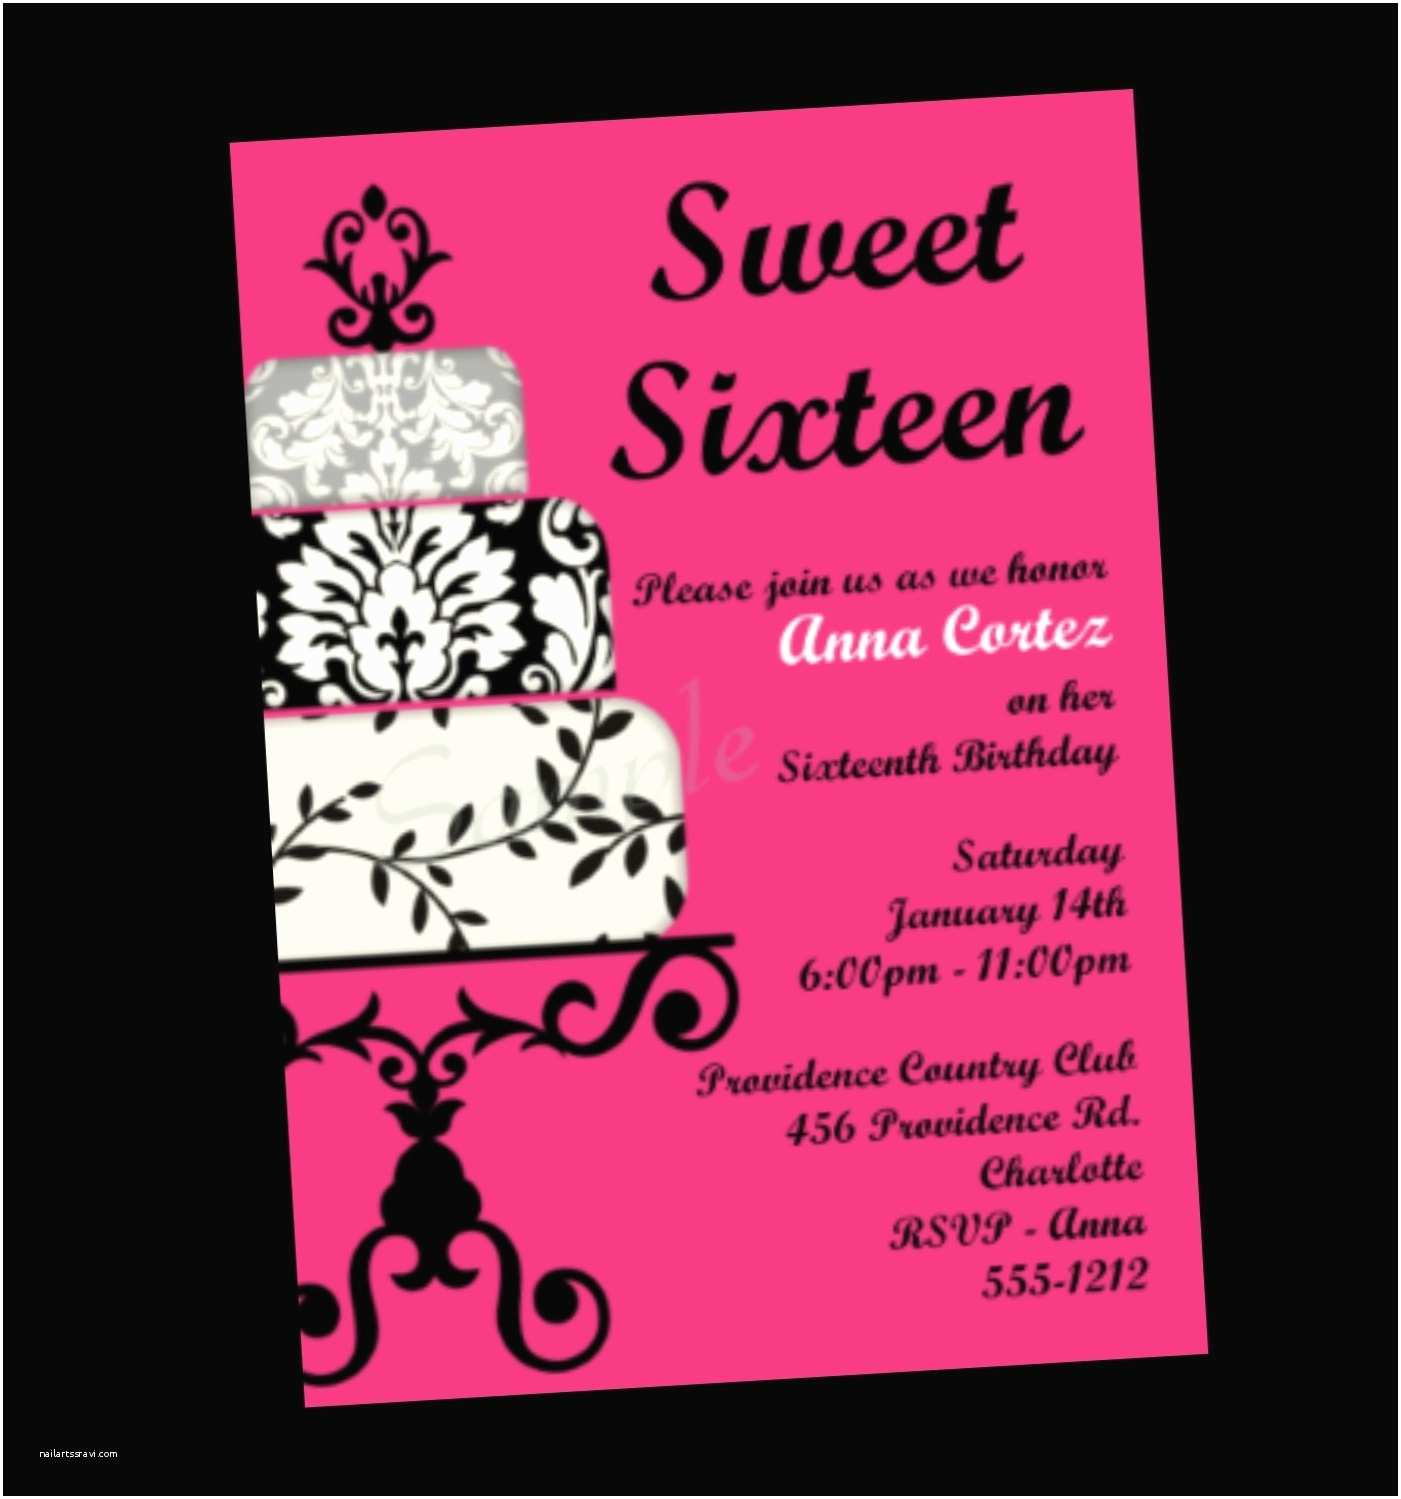 sweet 16 birthday invitation sweet